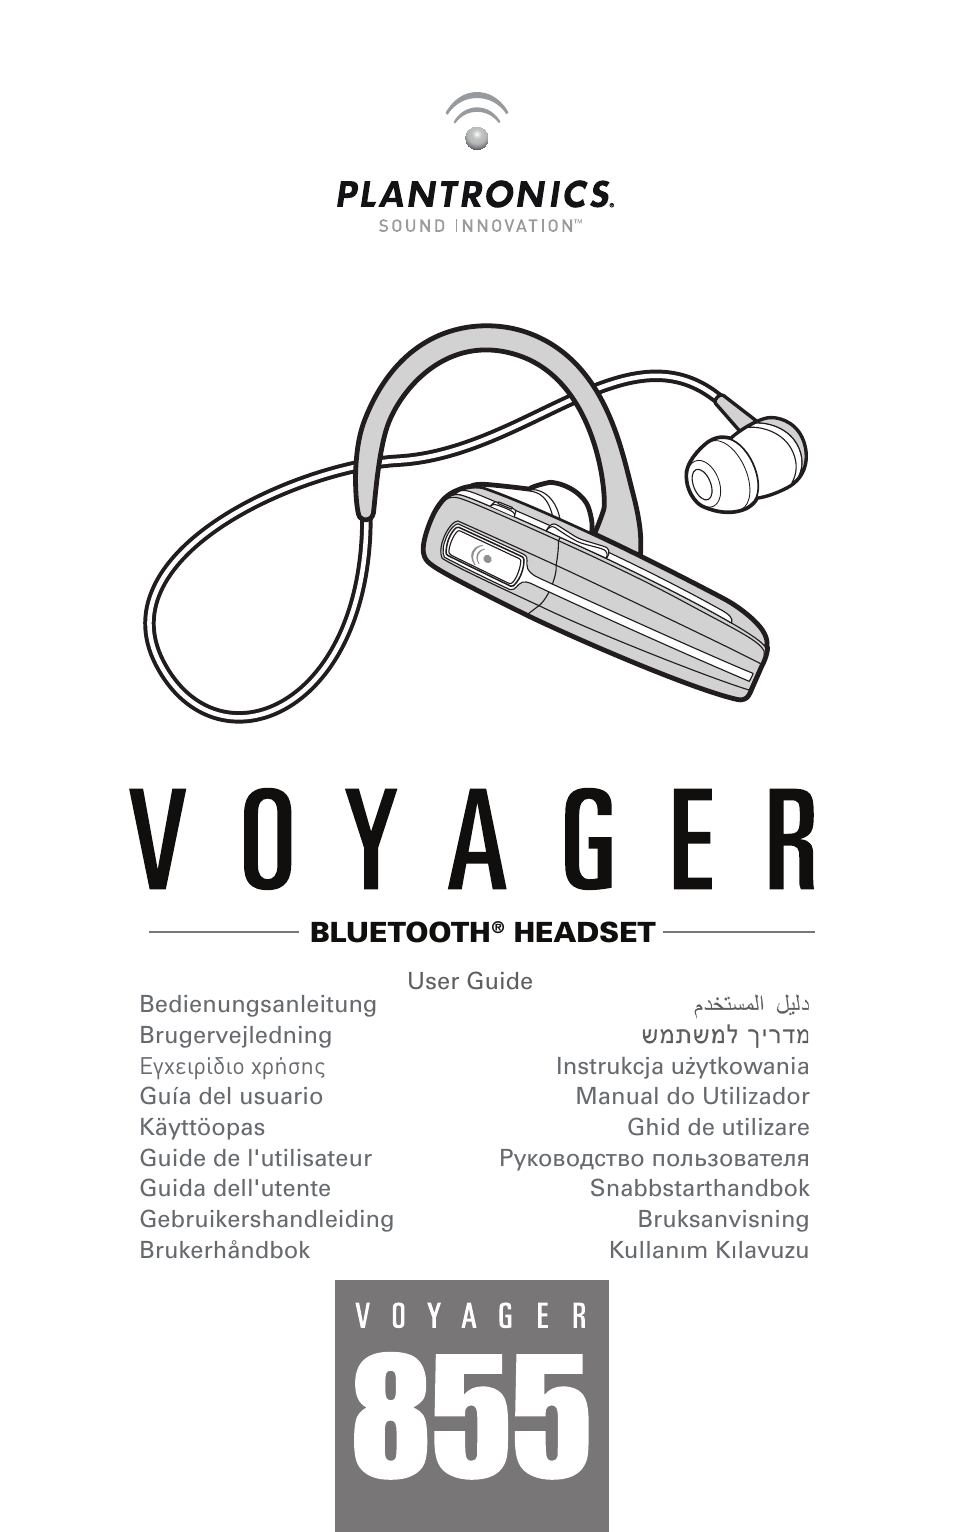 plantronics voyager 855 stereo bluetooth headset user manual 20 pages rh manualsdir com User ID and Password Plantronics Wireless Headset